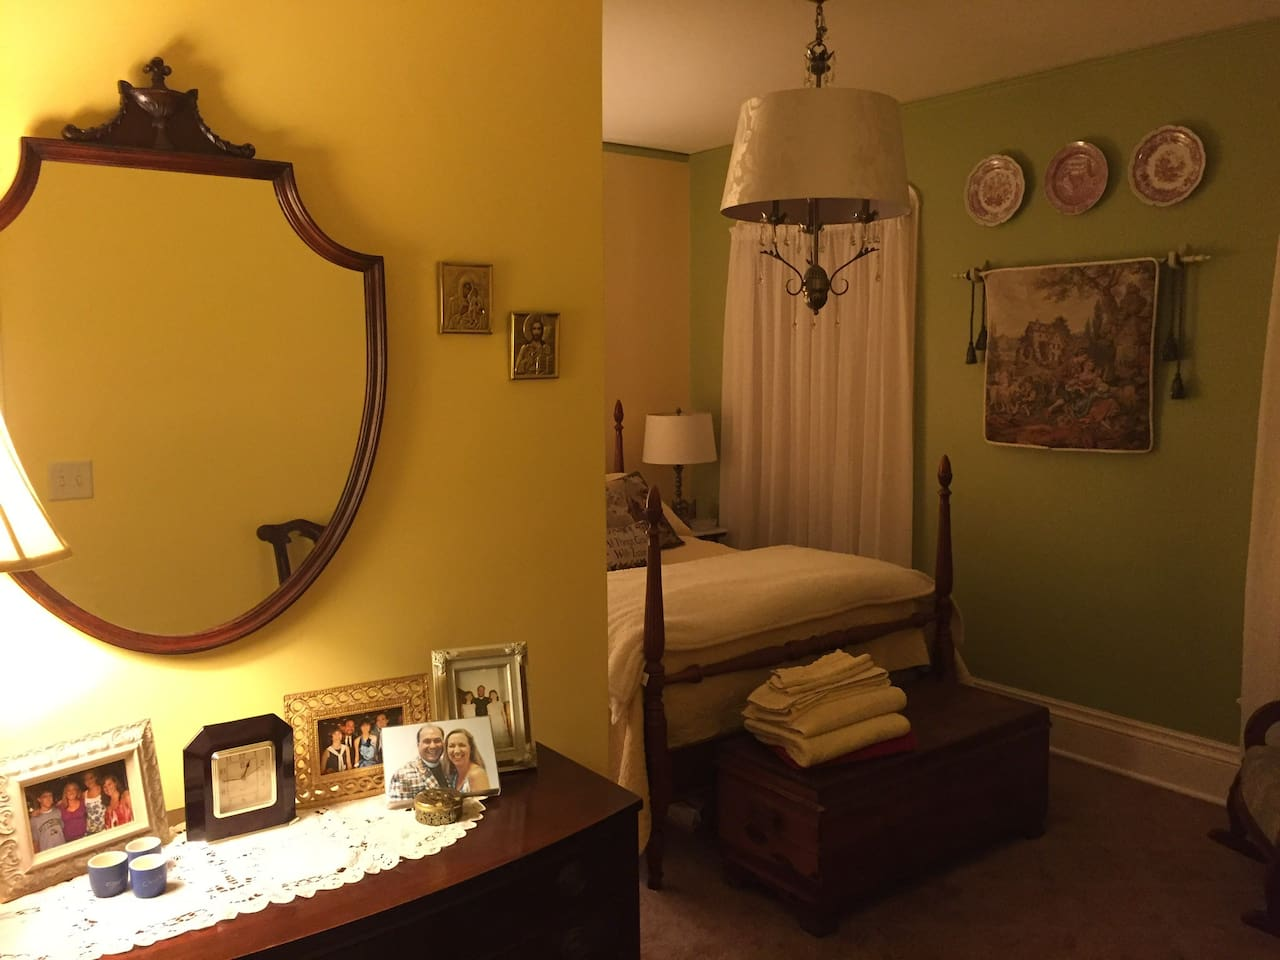 The Yellow Room features a comfortable full size bed in an antique bedroom set, a TV with full digital channels and premium movie options, and an upholstered rocking chair.